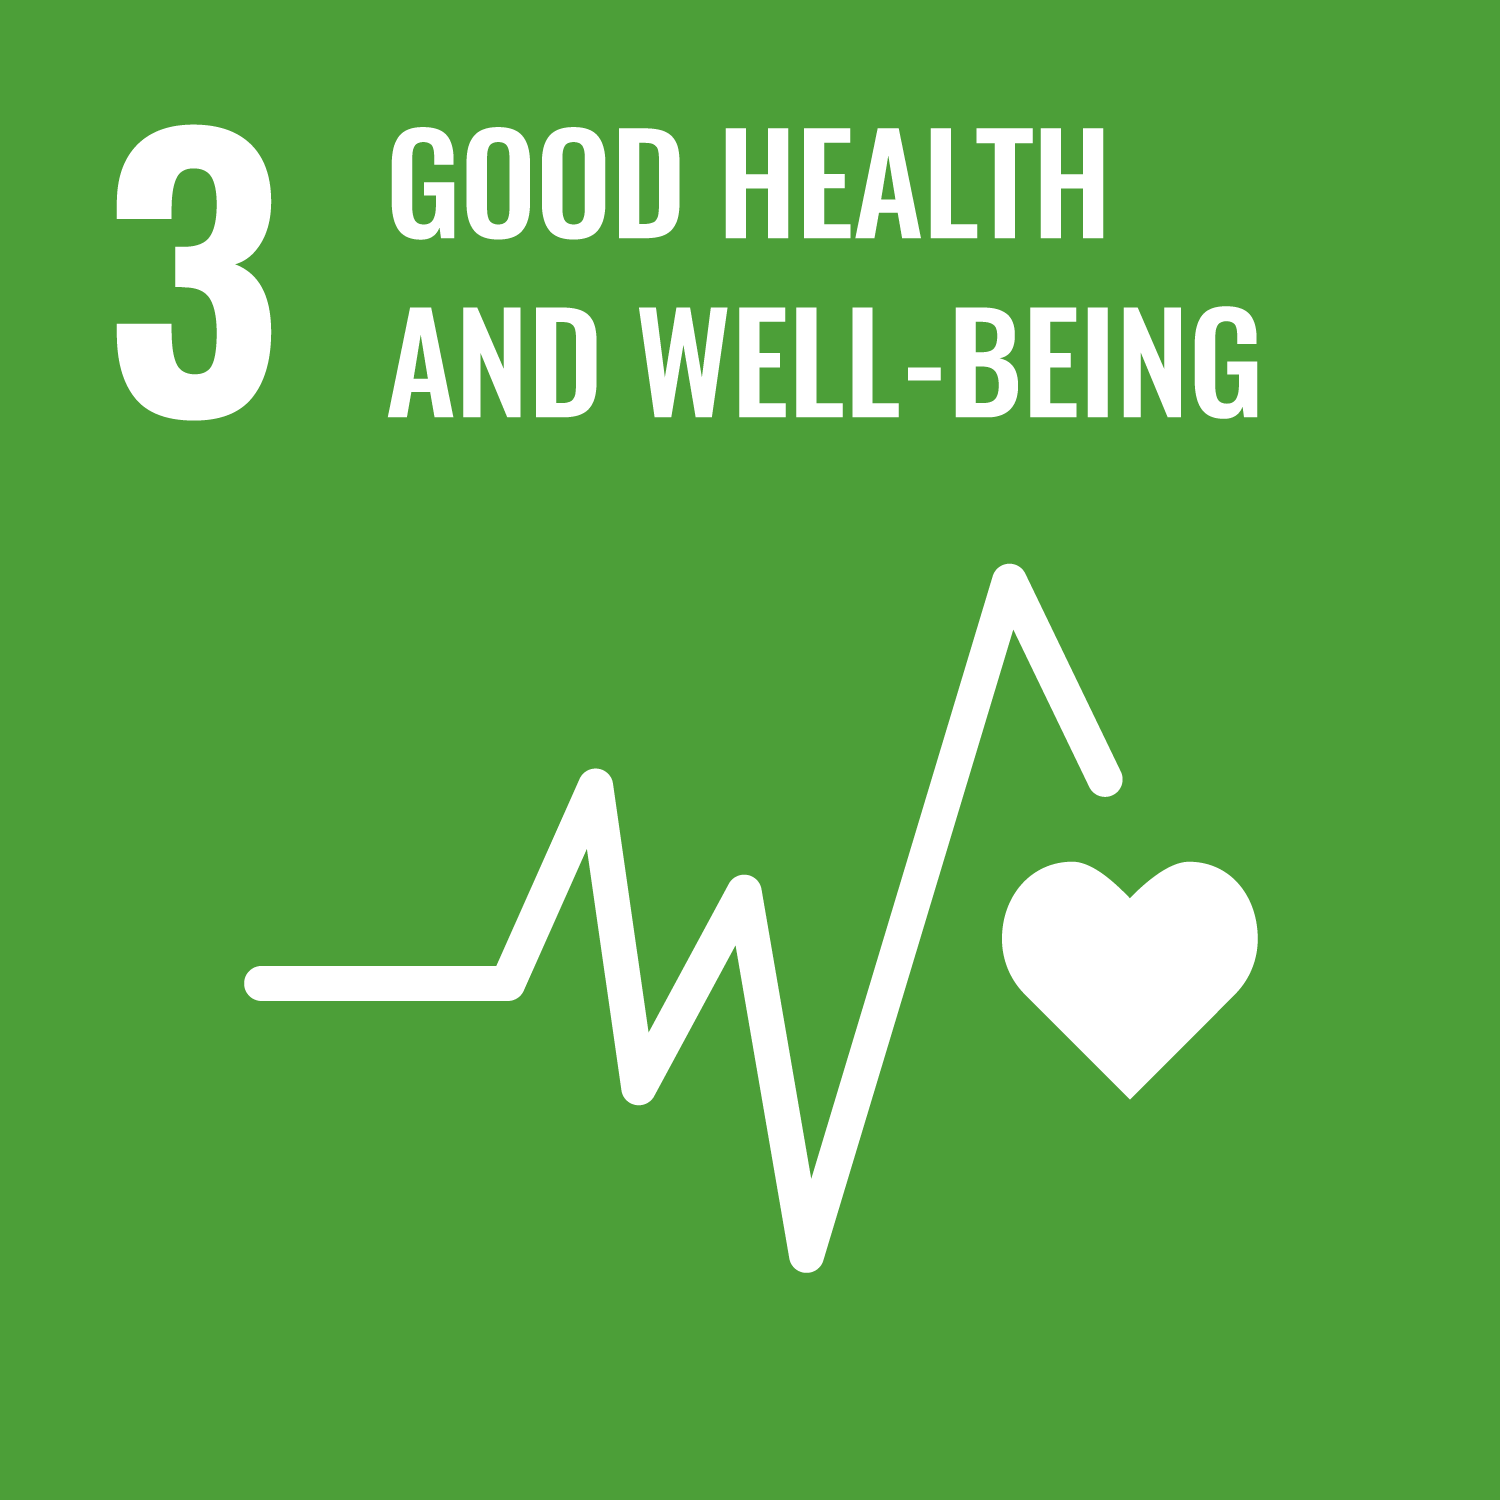 UN Sustainable goal - Good Health and Wellbeing